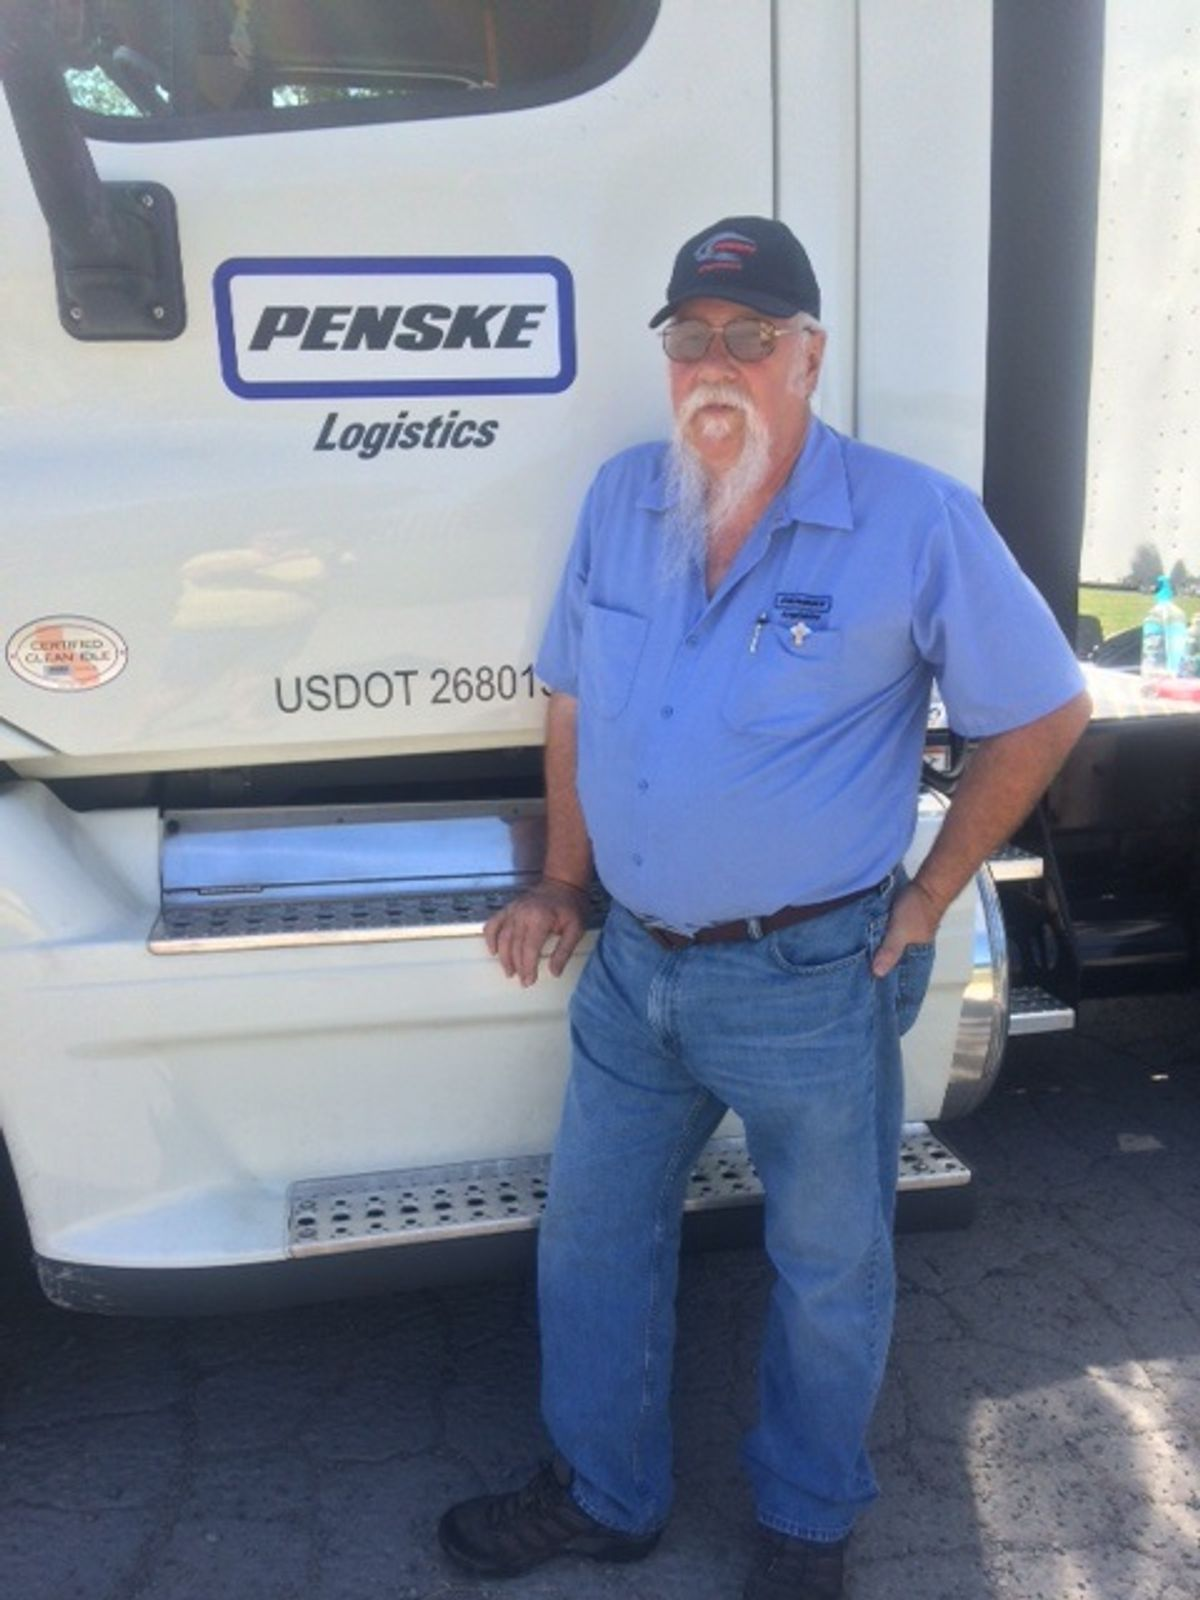 Truck Driving Pair's Chance Meeting Leads To 20-Year Love Story